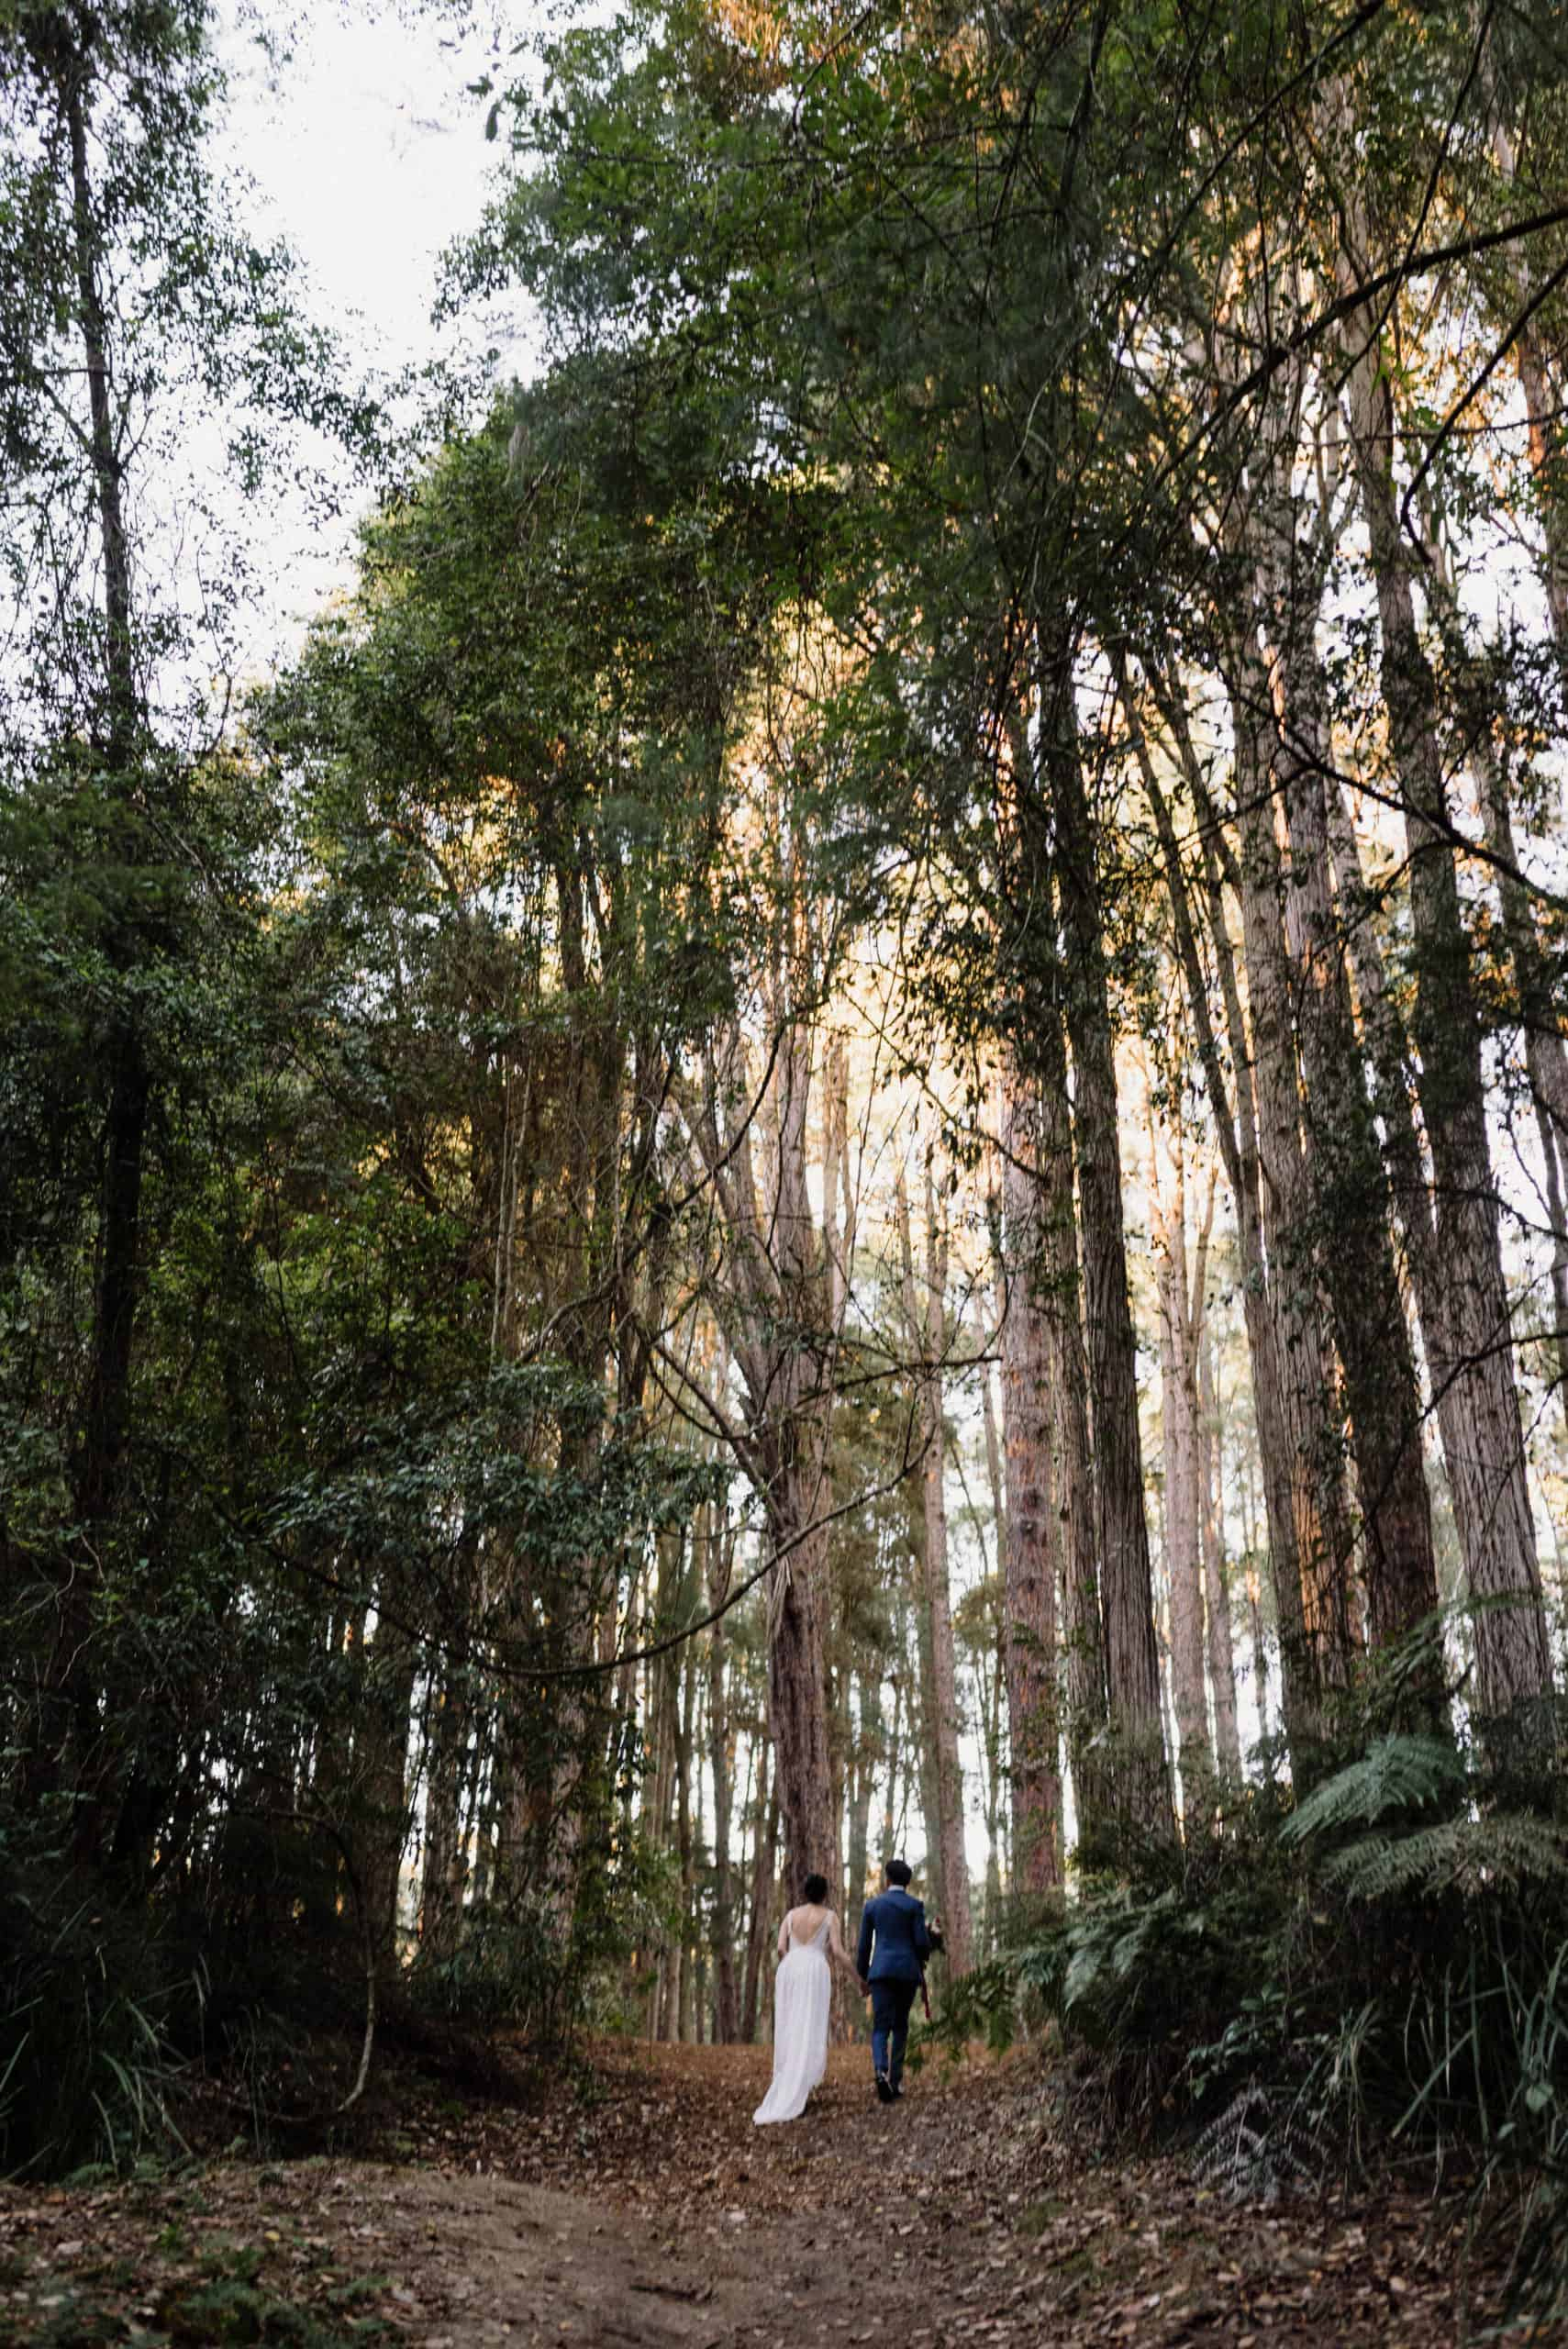 Bride and groom trek through pine forest to the elopement ceremony location